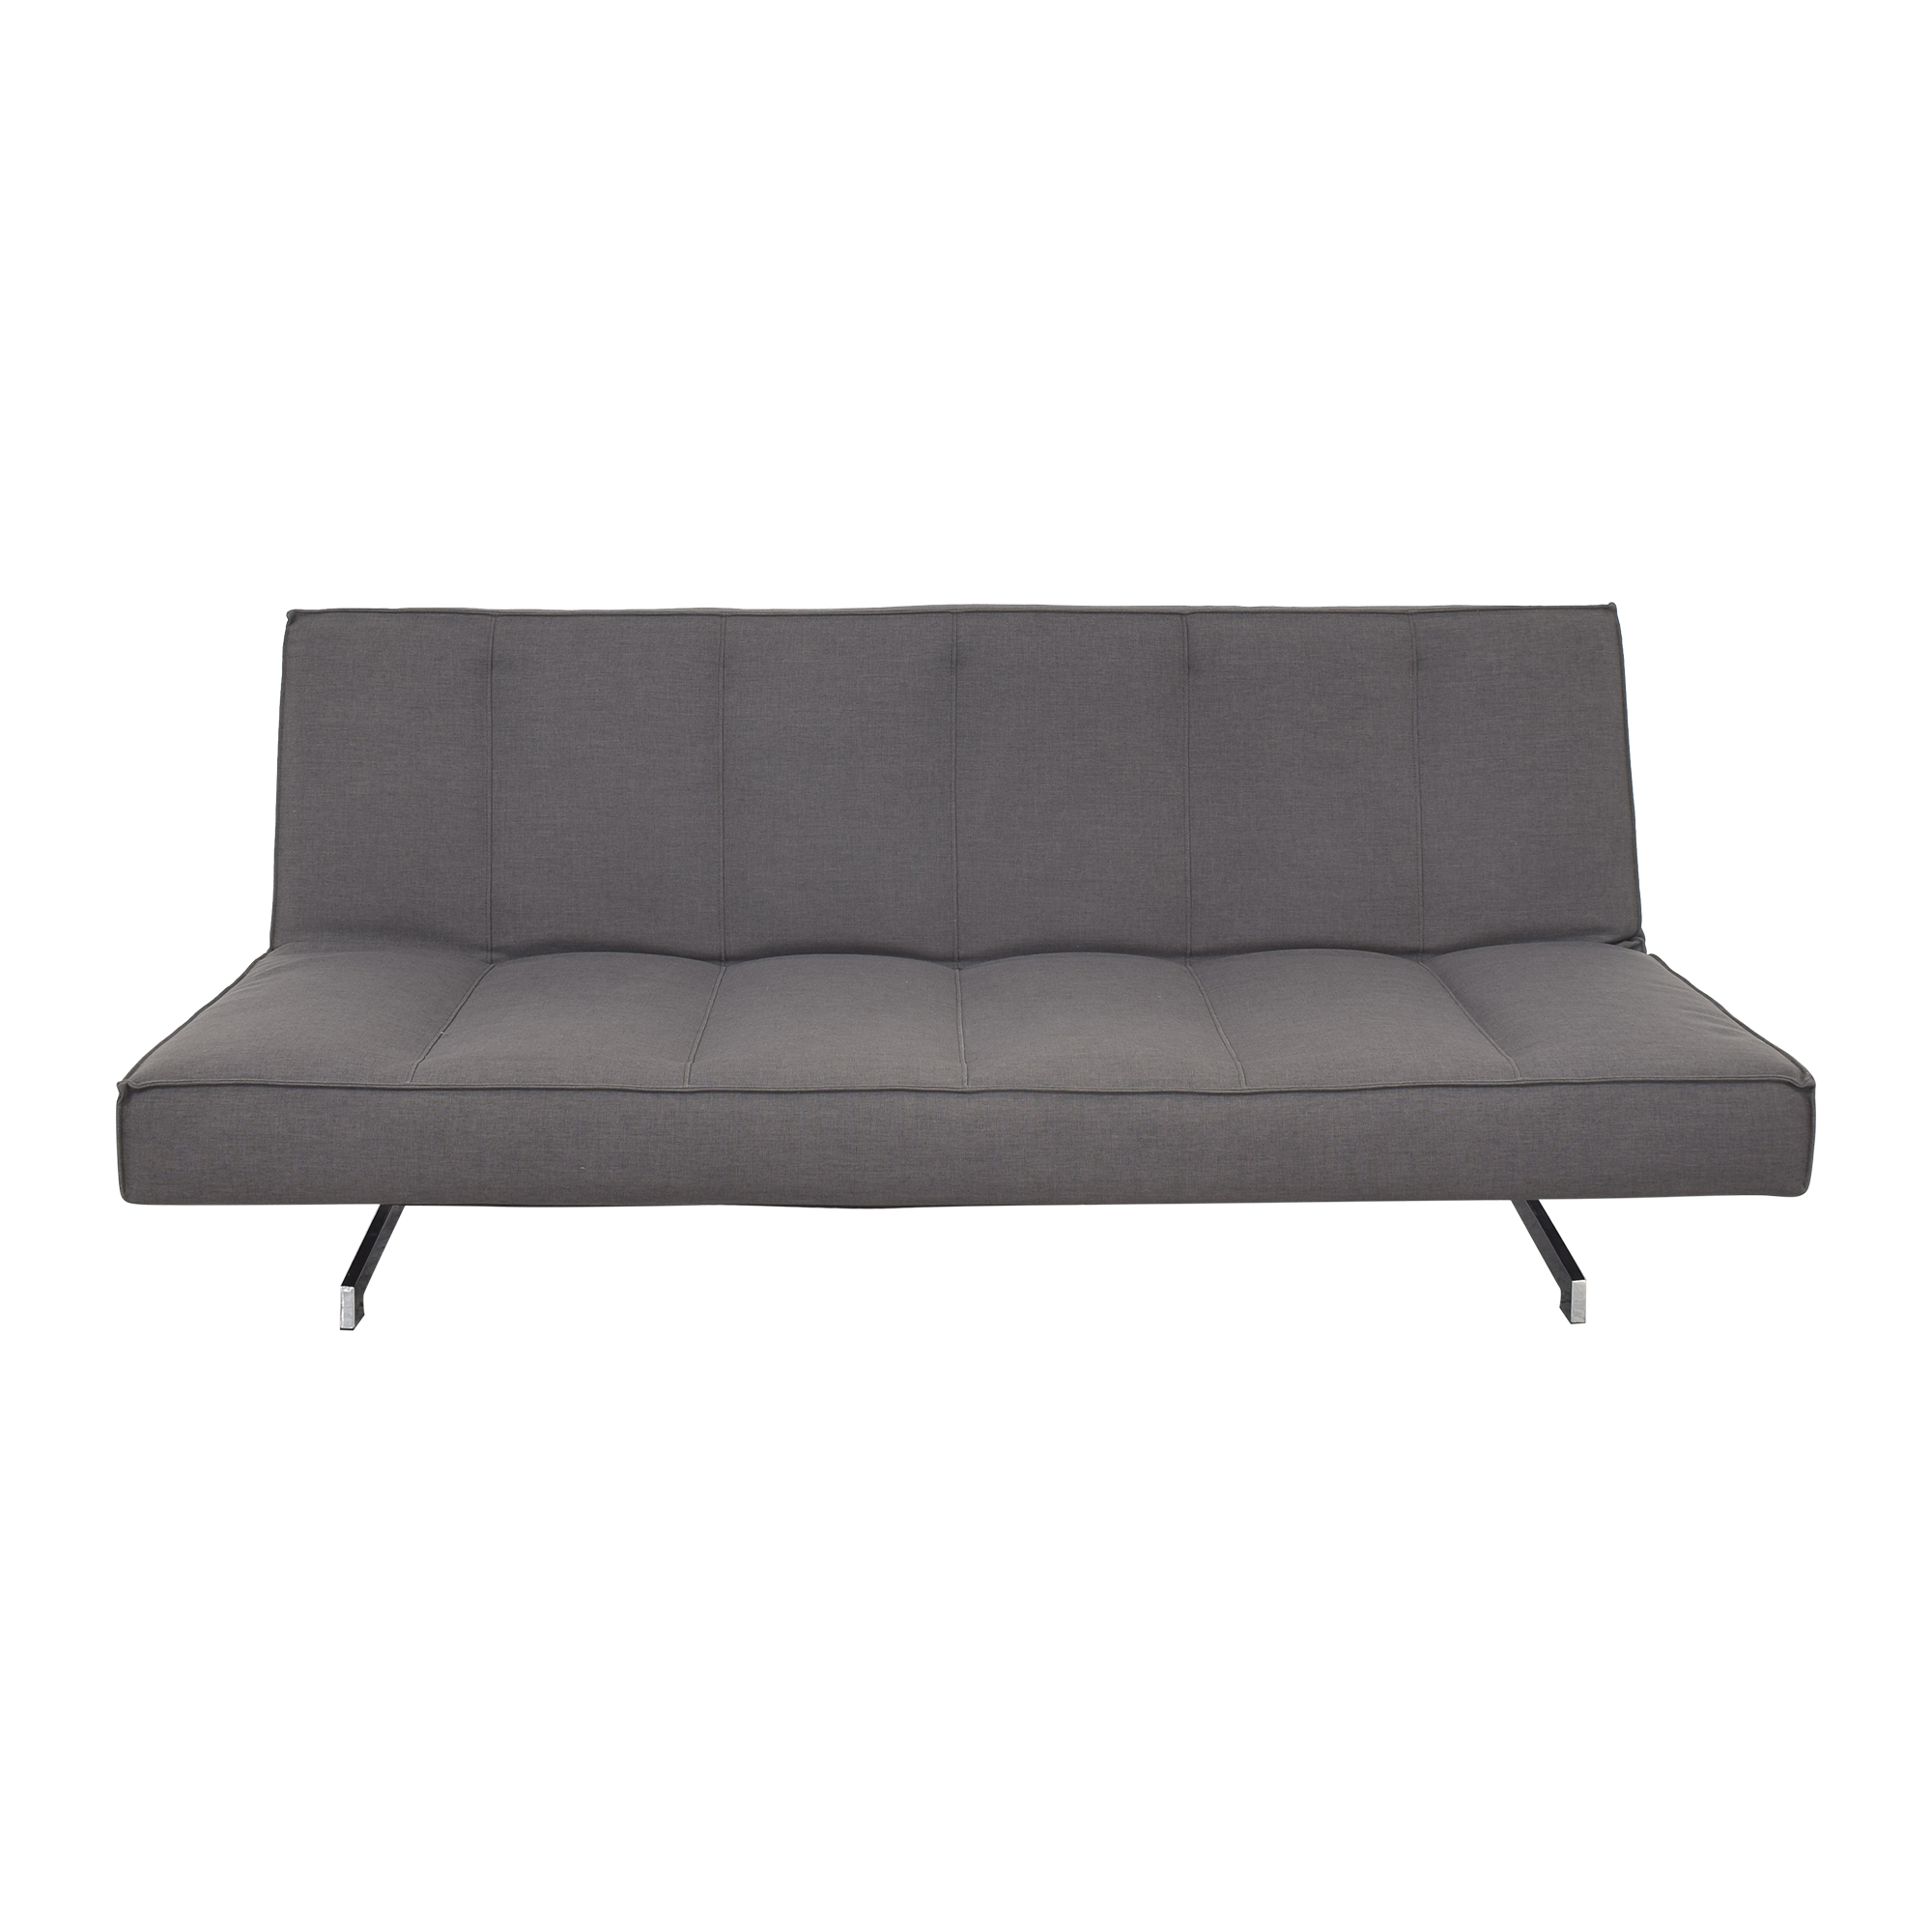 buy CB2 Flex Sleeper Sofa CB2 Sofa Beds